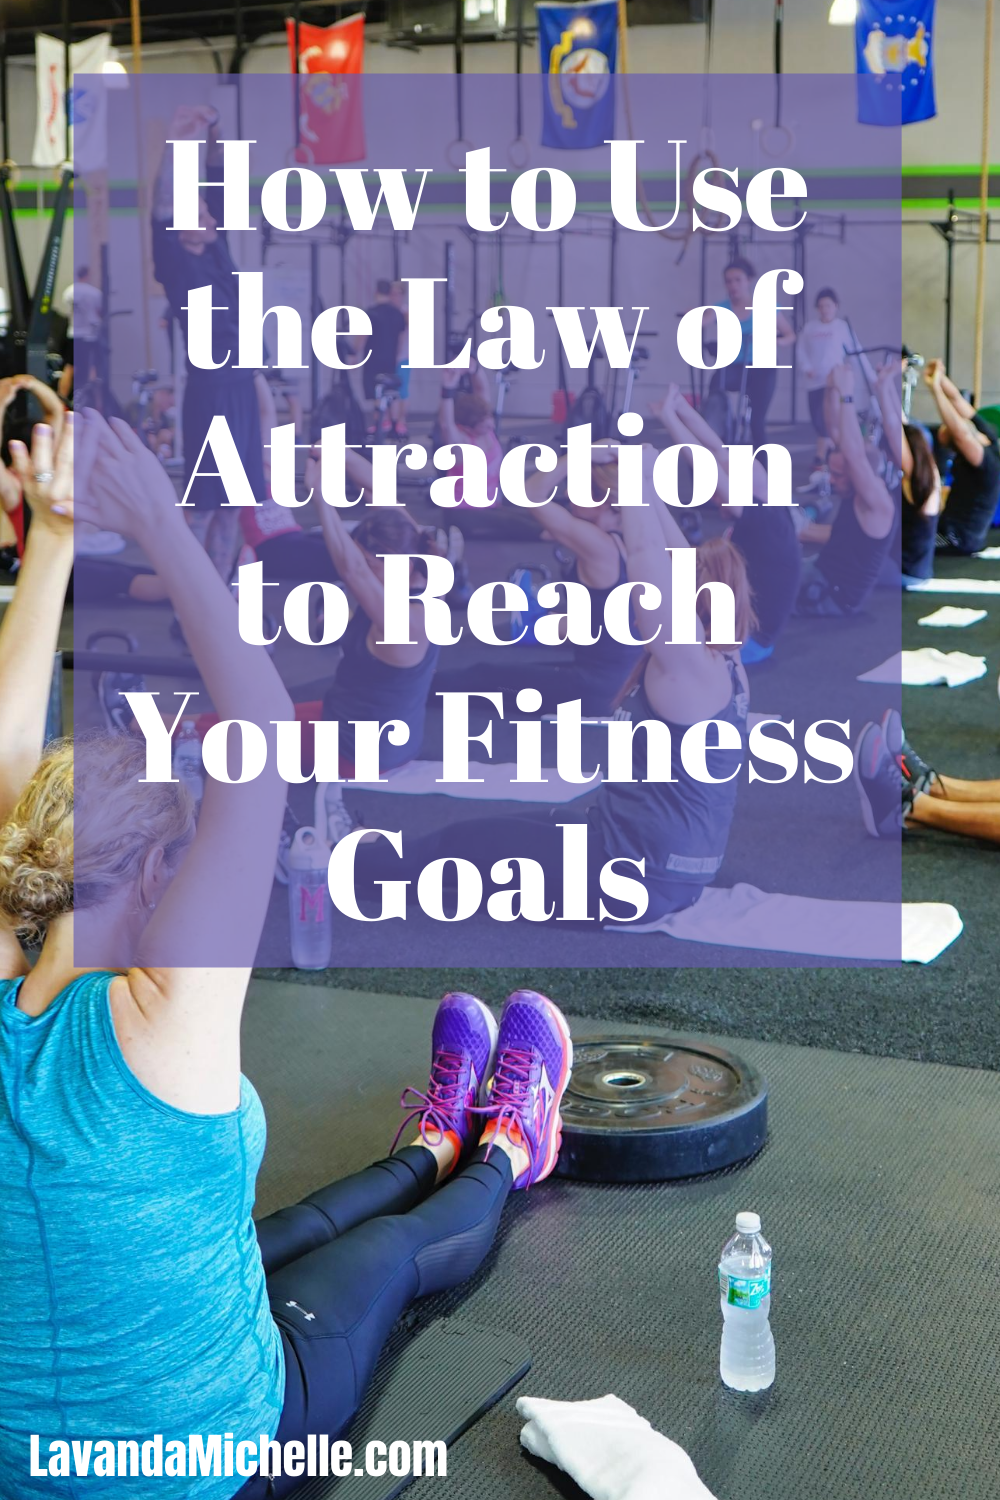 How to Use the Law of Attraction to Reach Your Fitness Goals